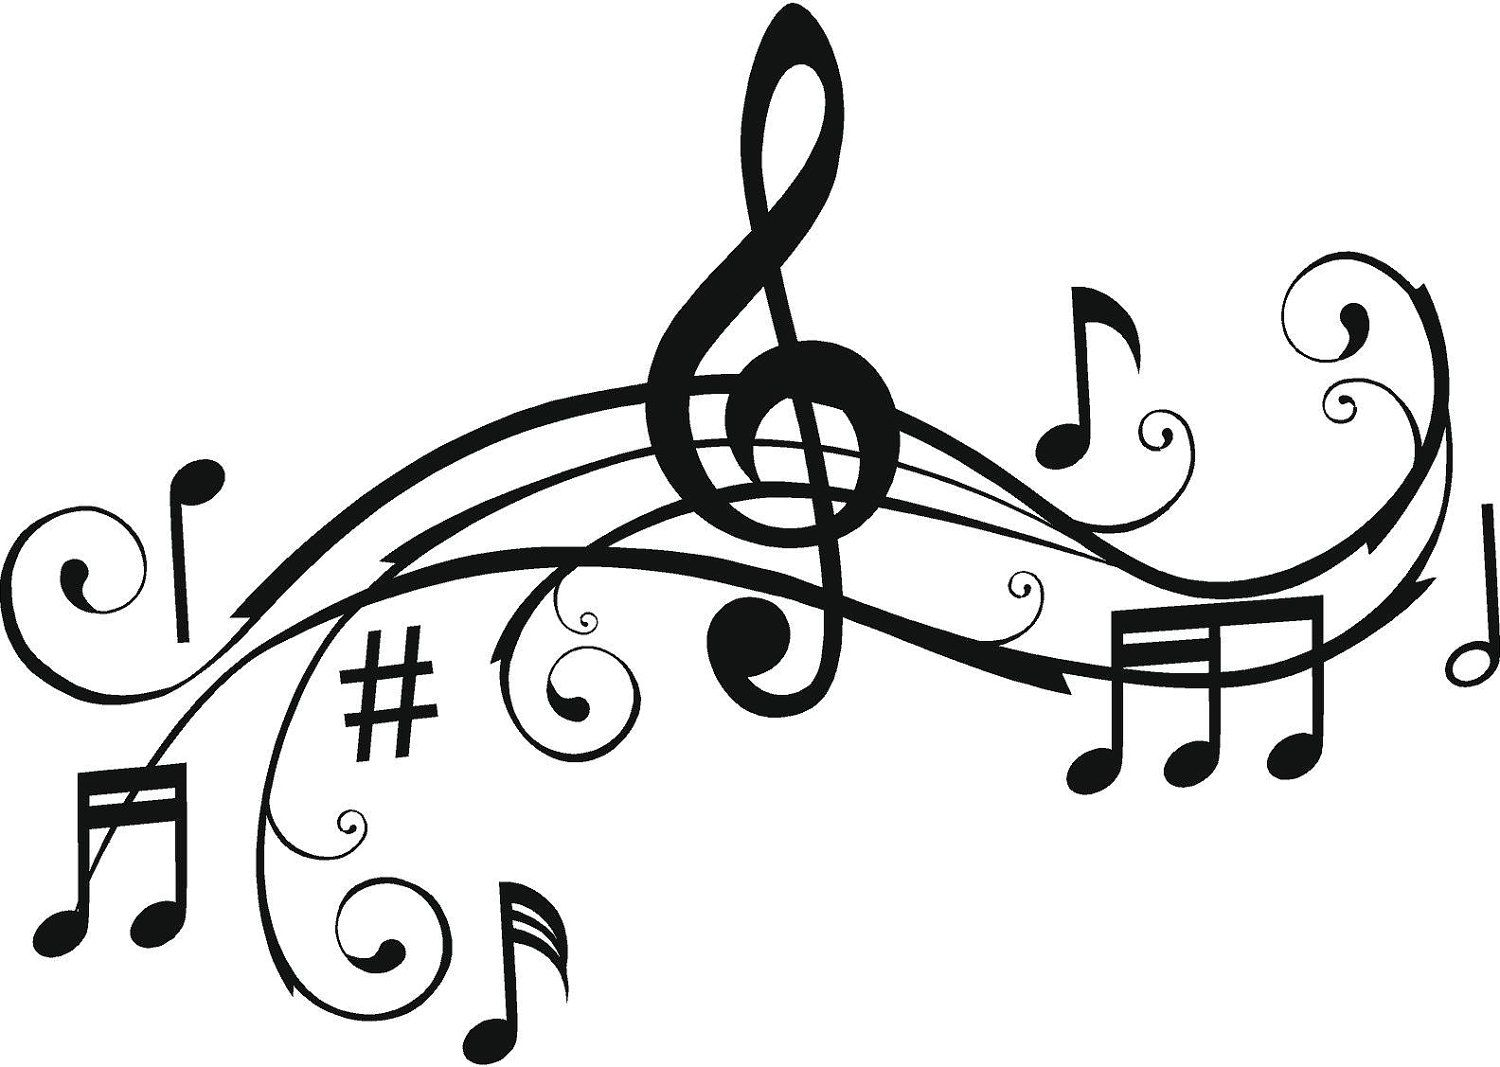 music notes wall art words vinyl lettering stickers decals free shipping to the us 2299